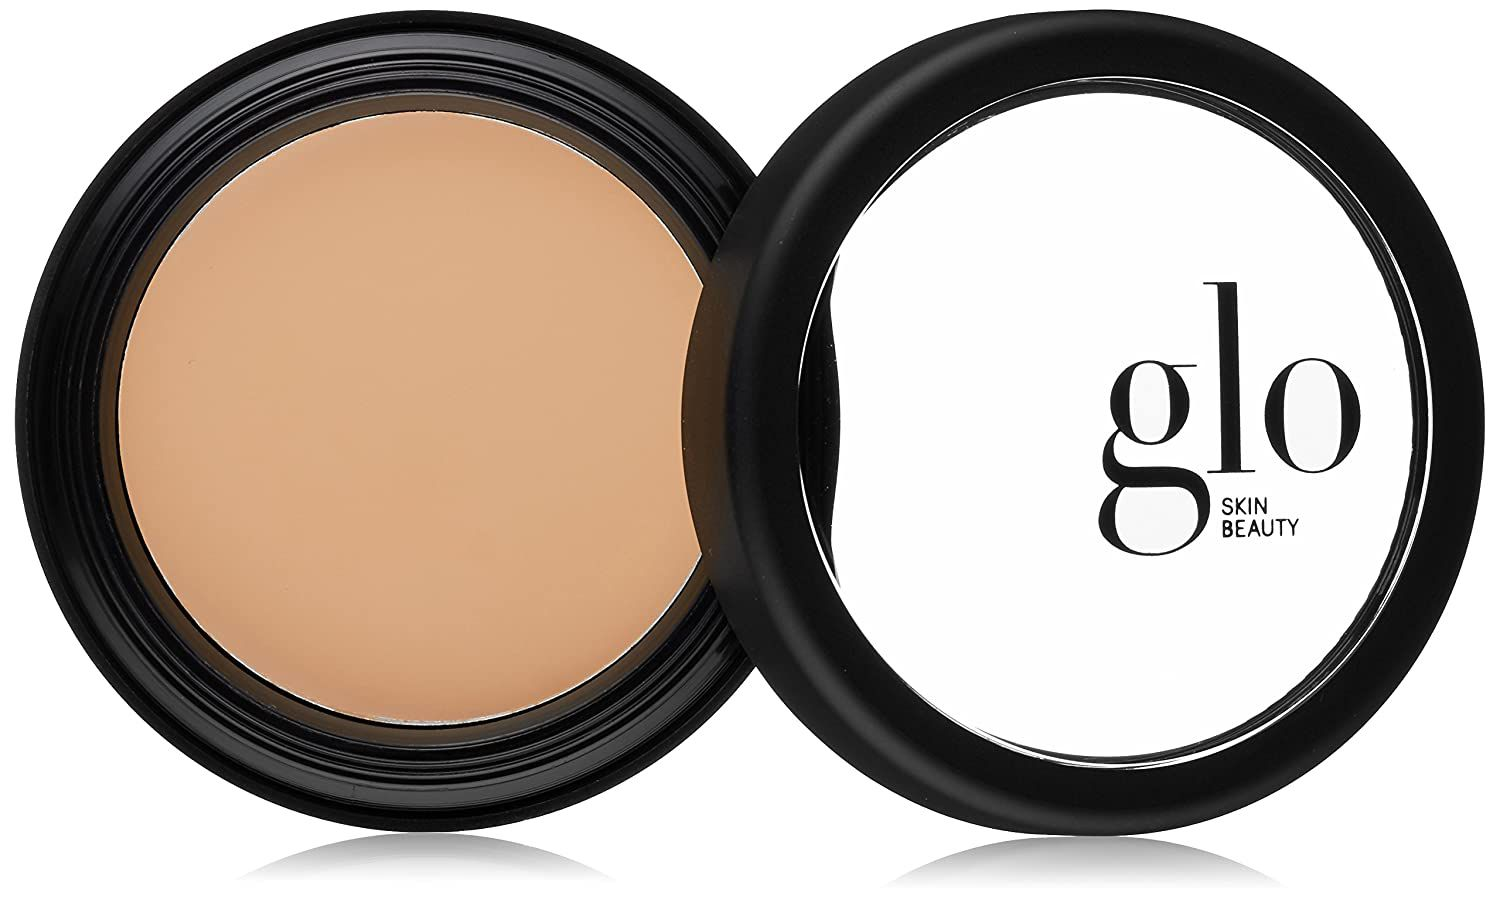 Glo Skin Beauty Oil-Free Camouflage Concealer